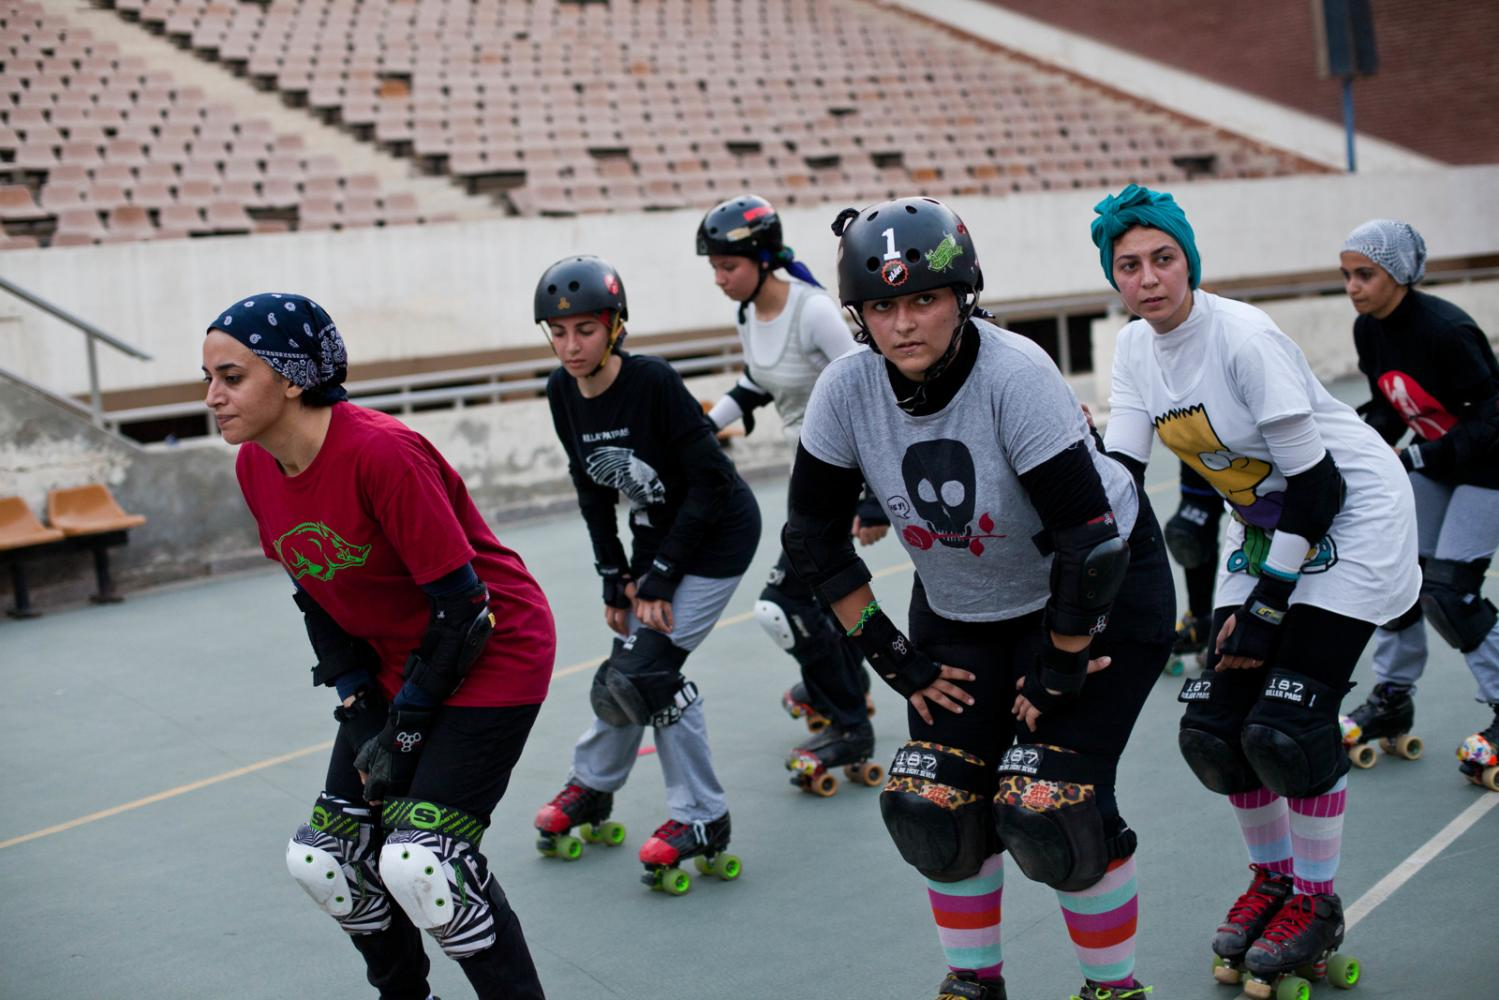 Cairollers: Egyptian Roller Derby